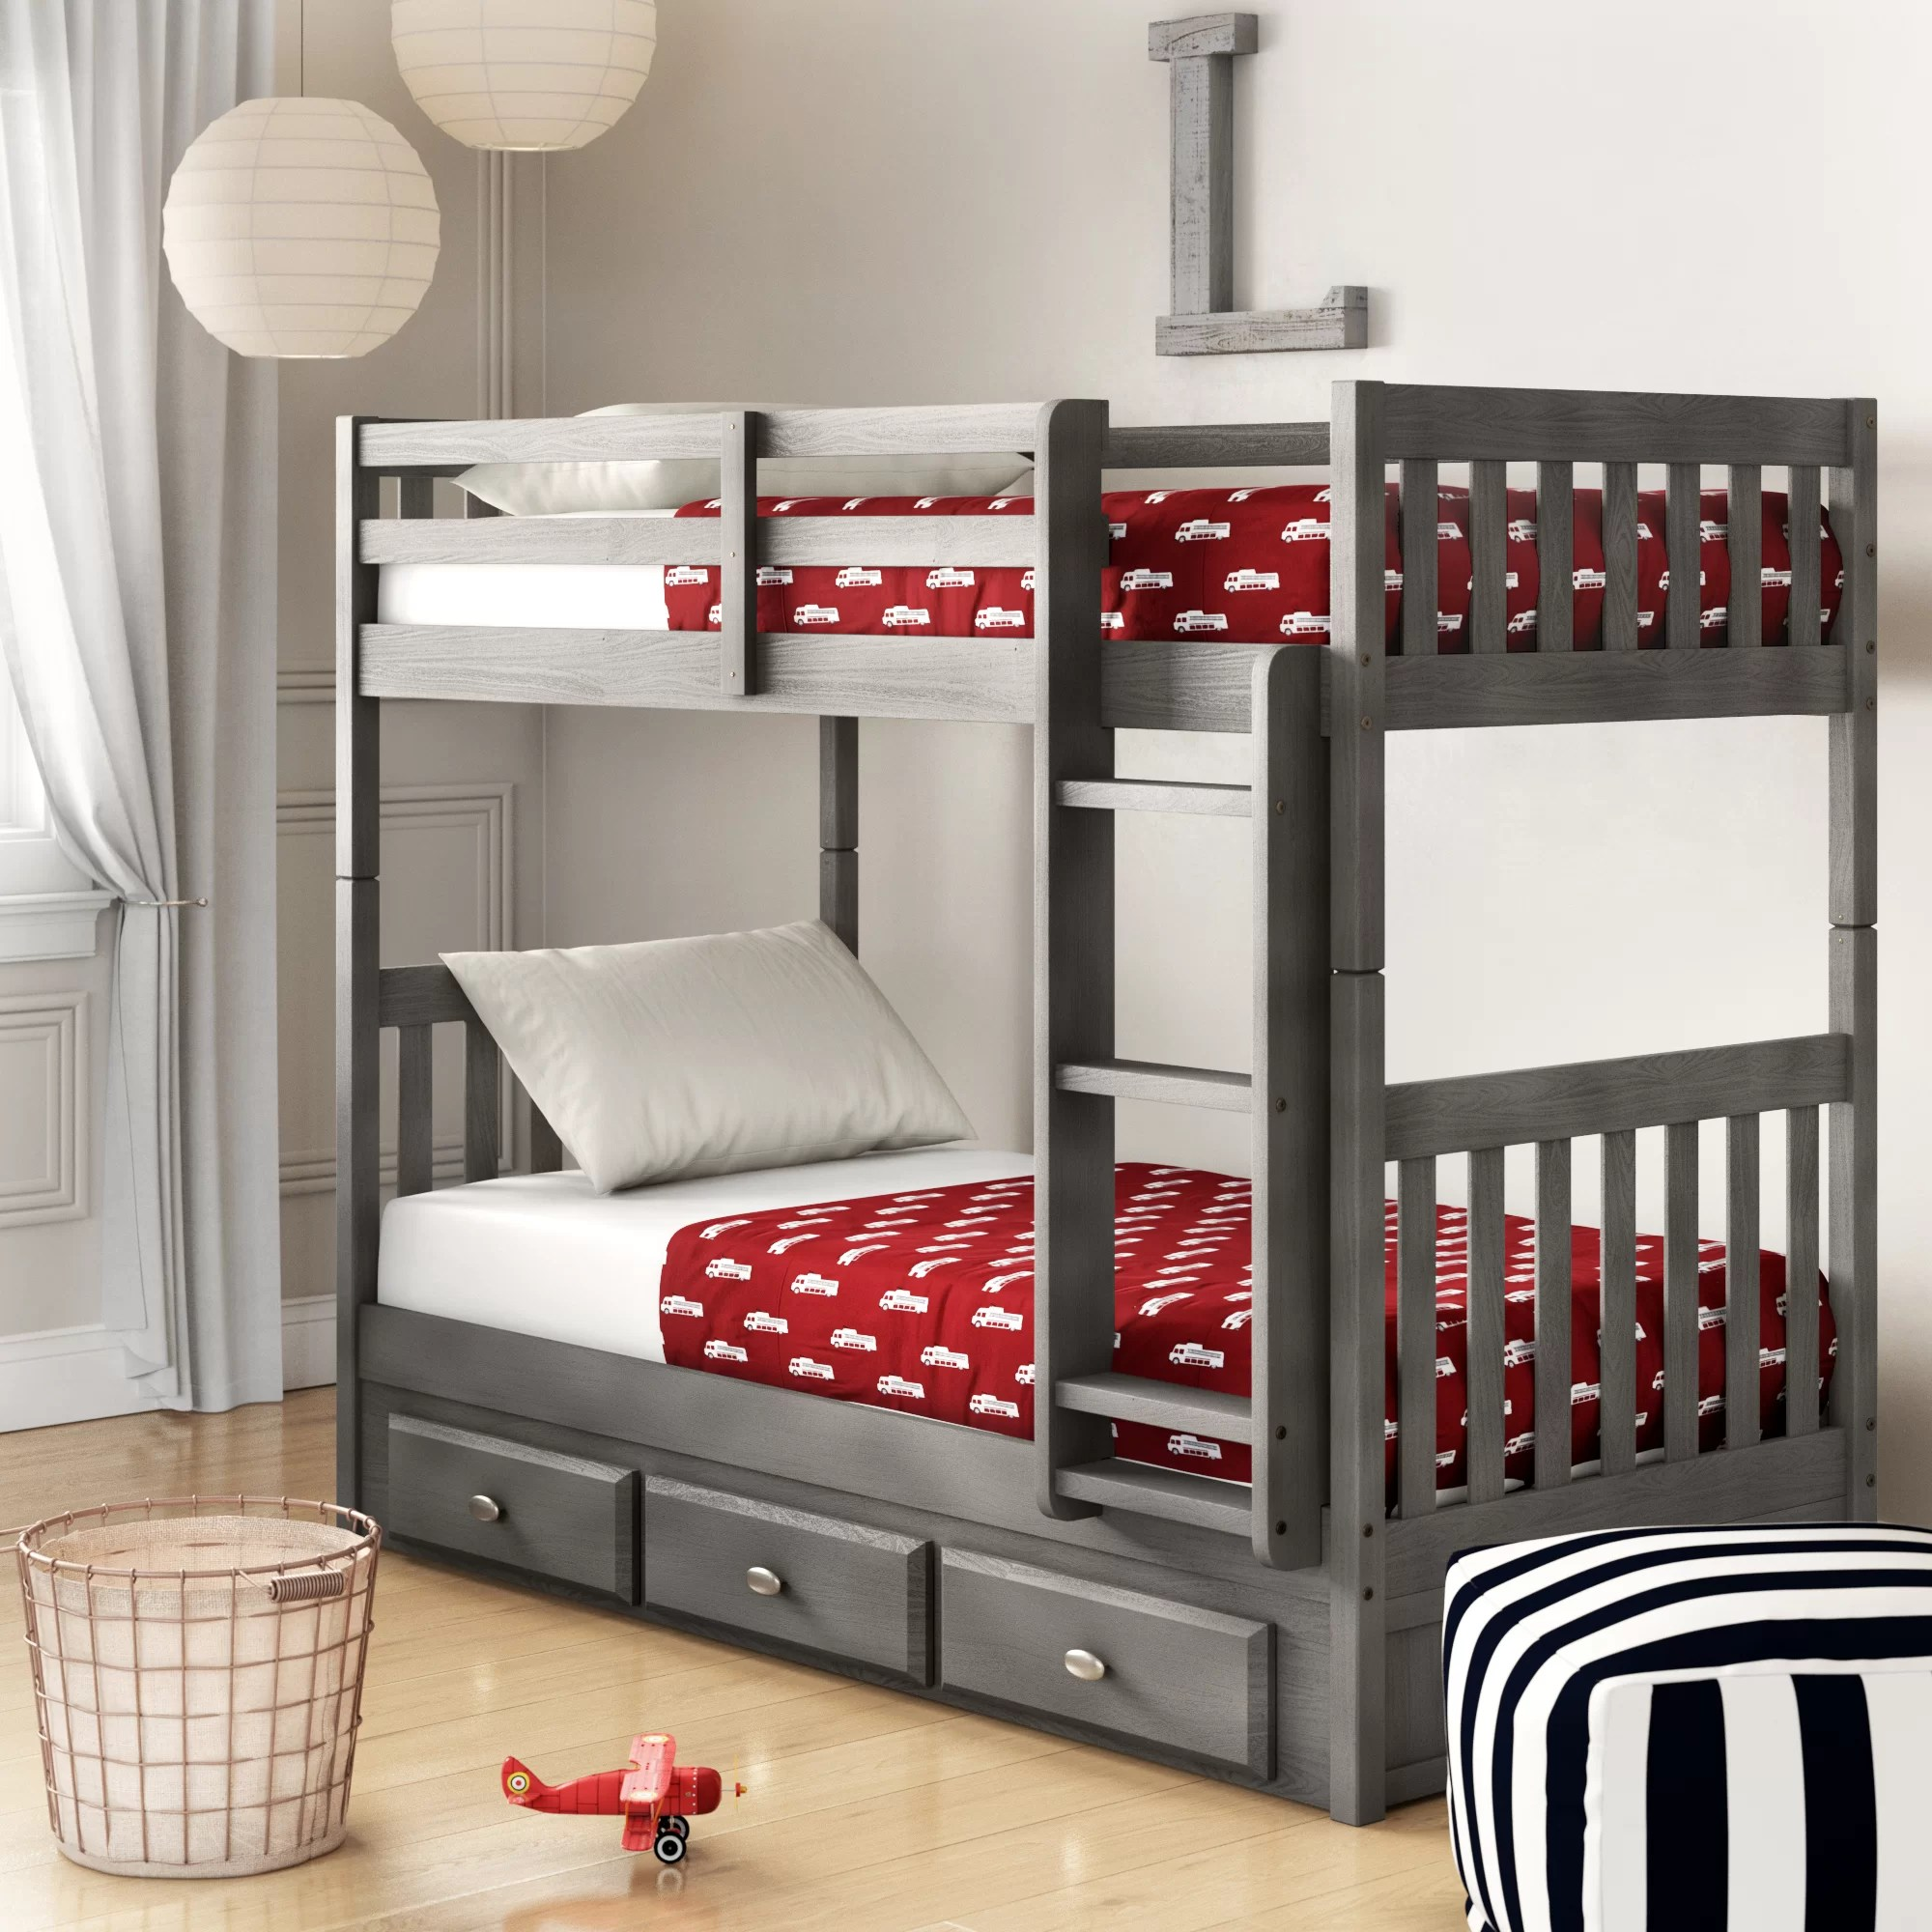 Snooze Bunk Beds Williamson Twin Over Twin Bunk Bed With Drawers